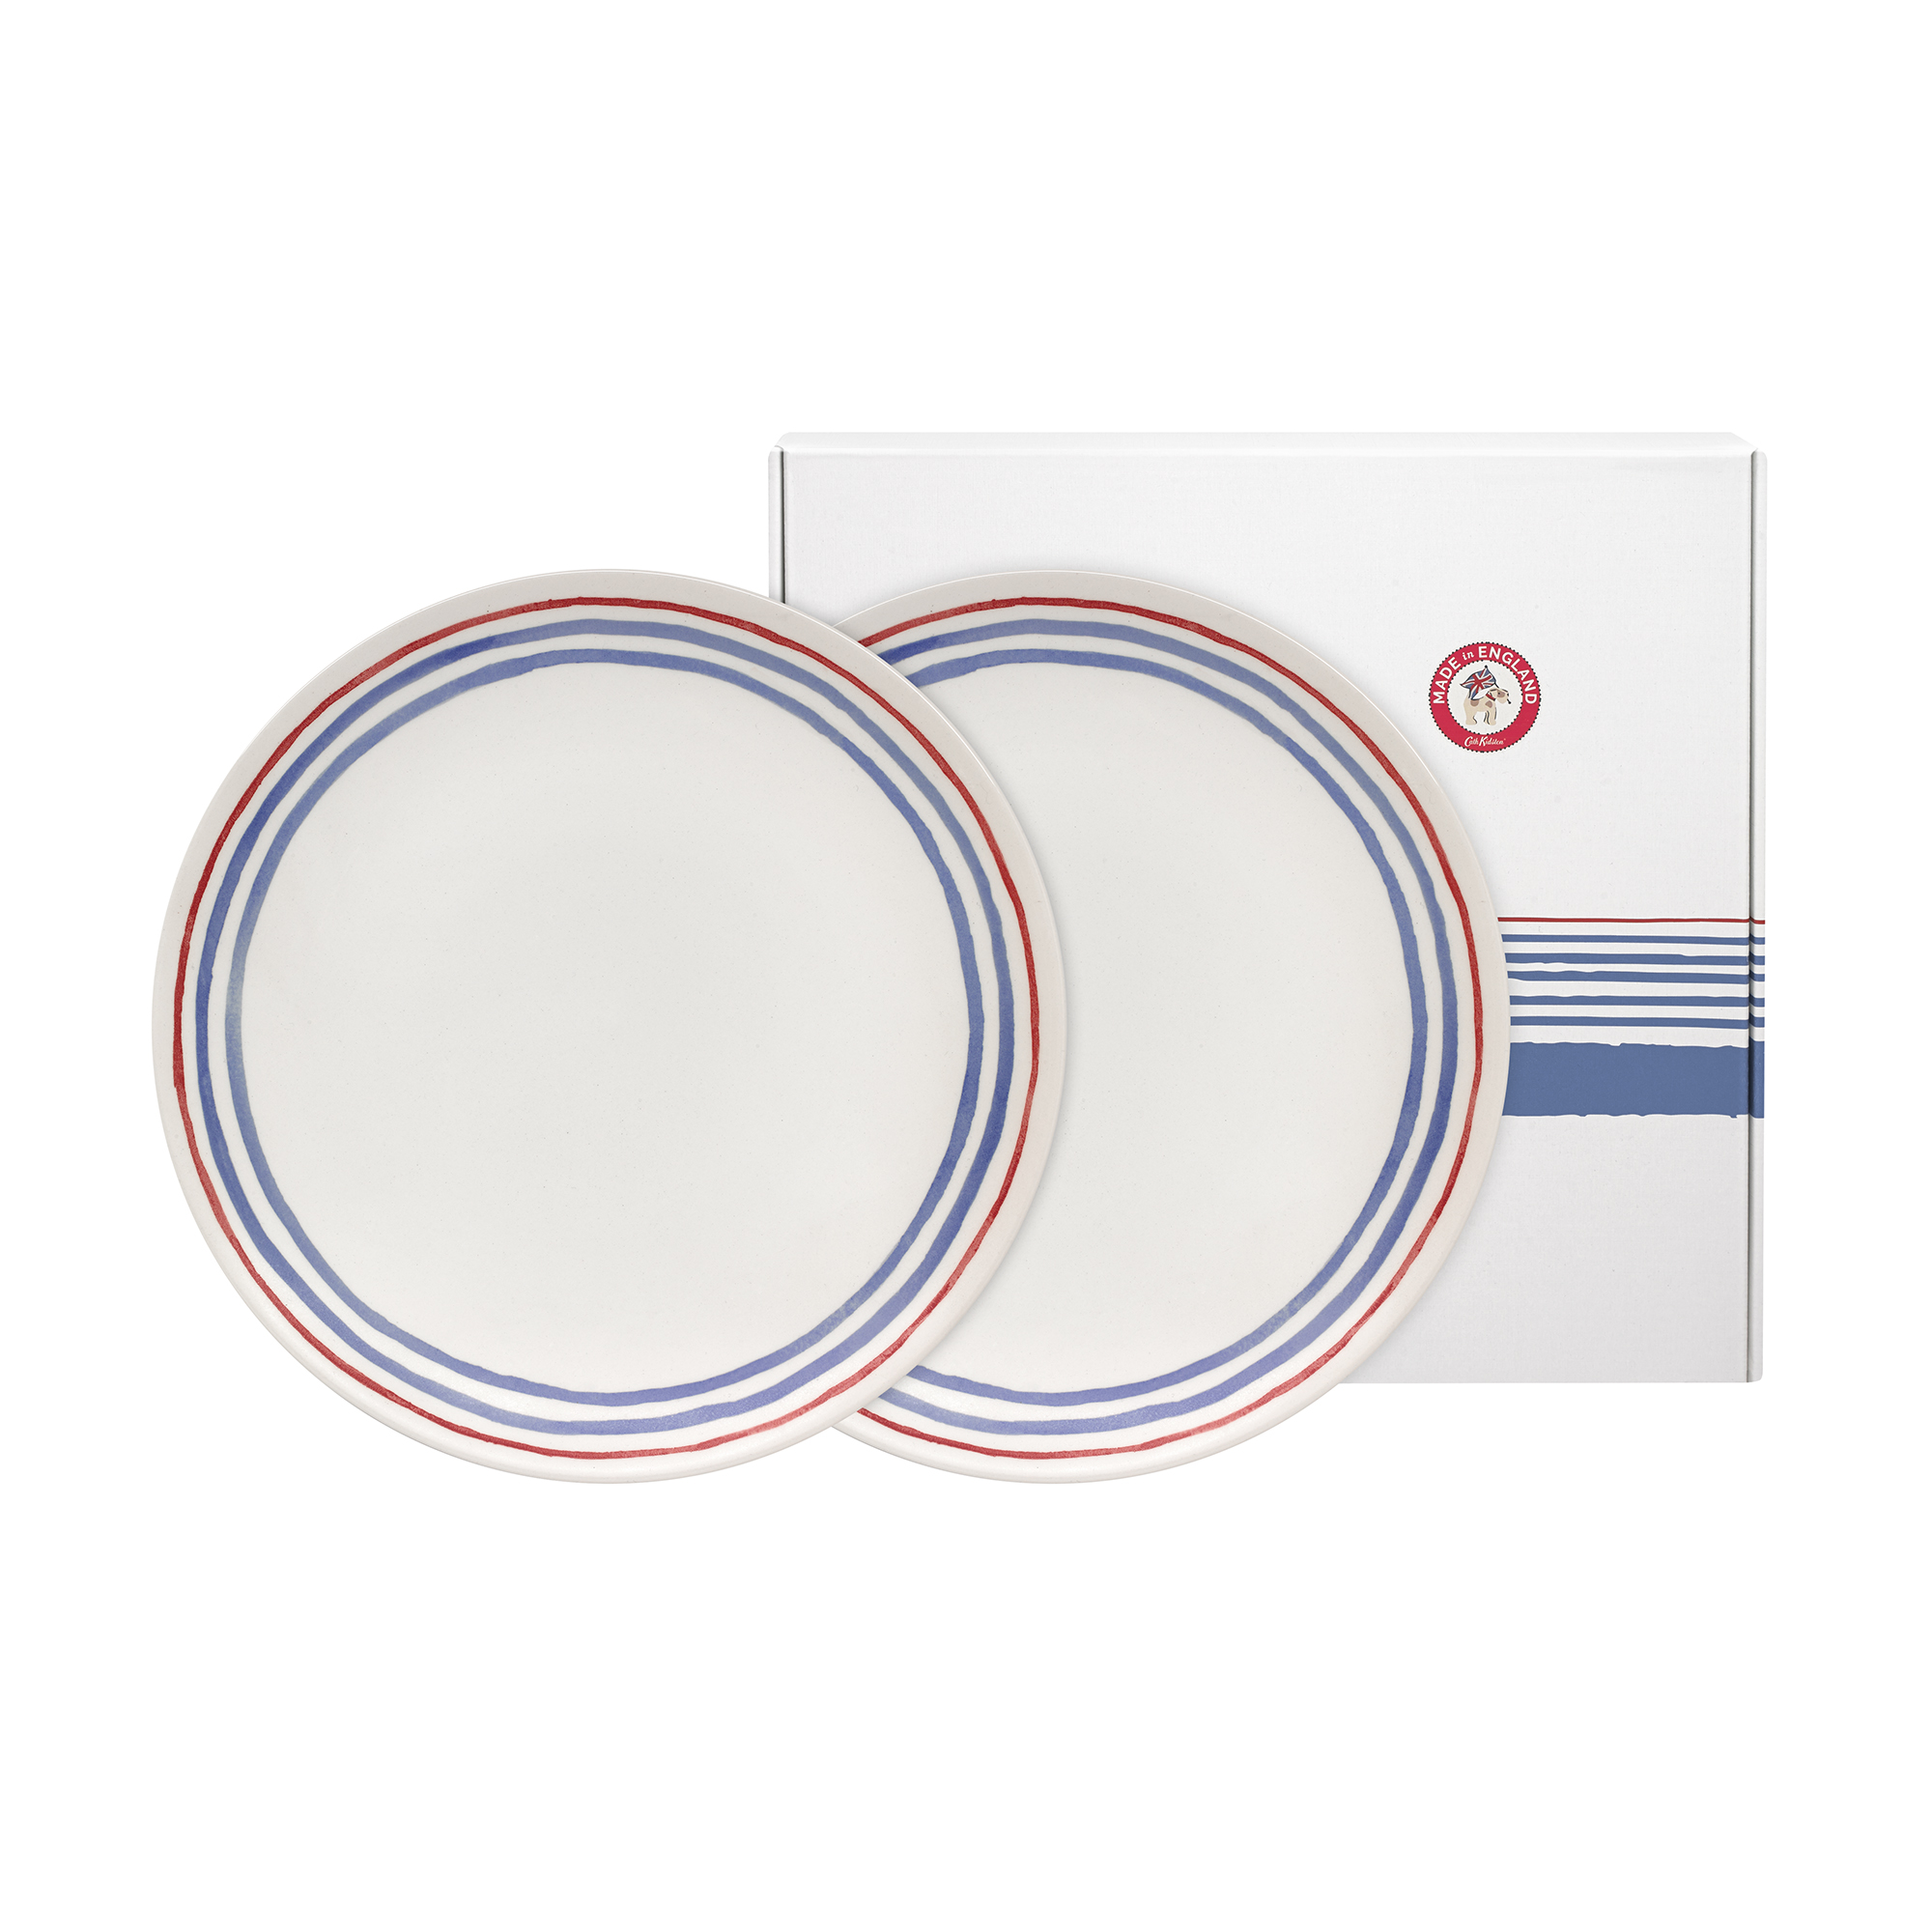 Cath Kidston Made in England Set of Two Dinner Plates in Off White, China Stripe, 100% Earthenware